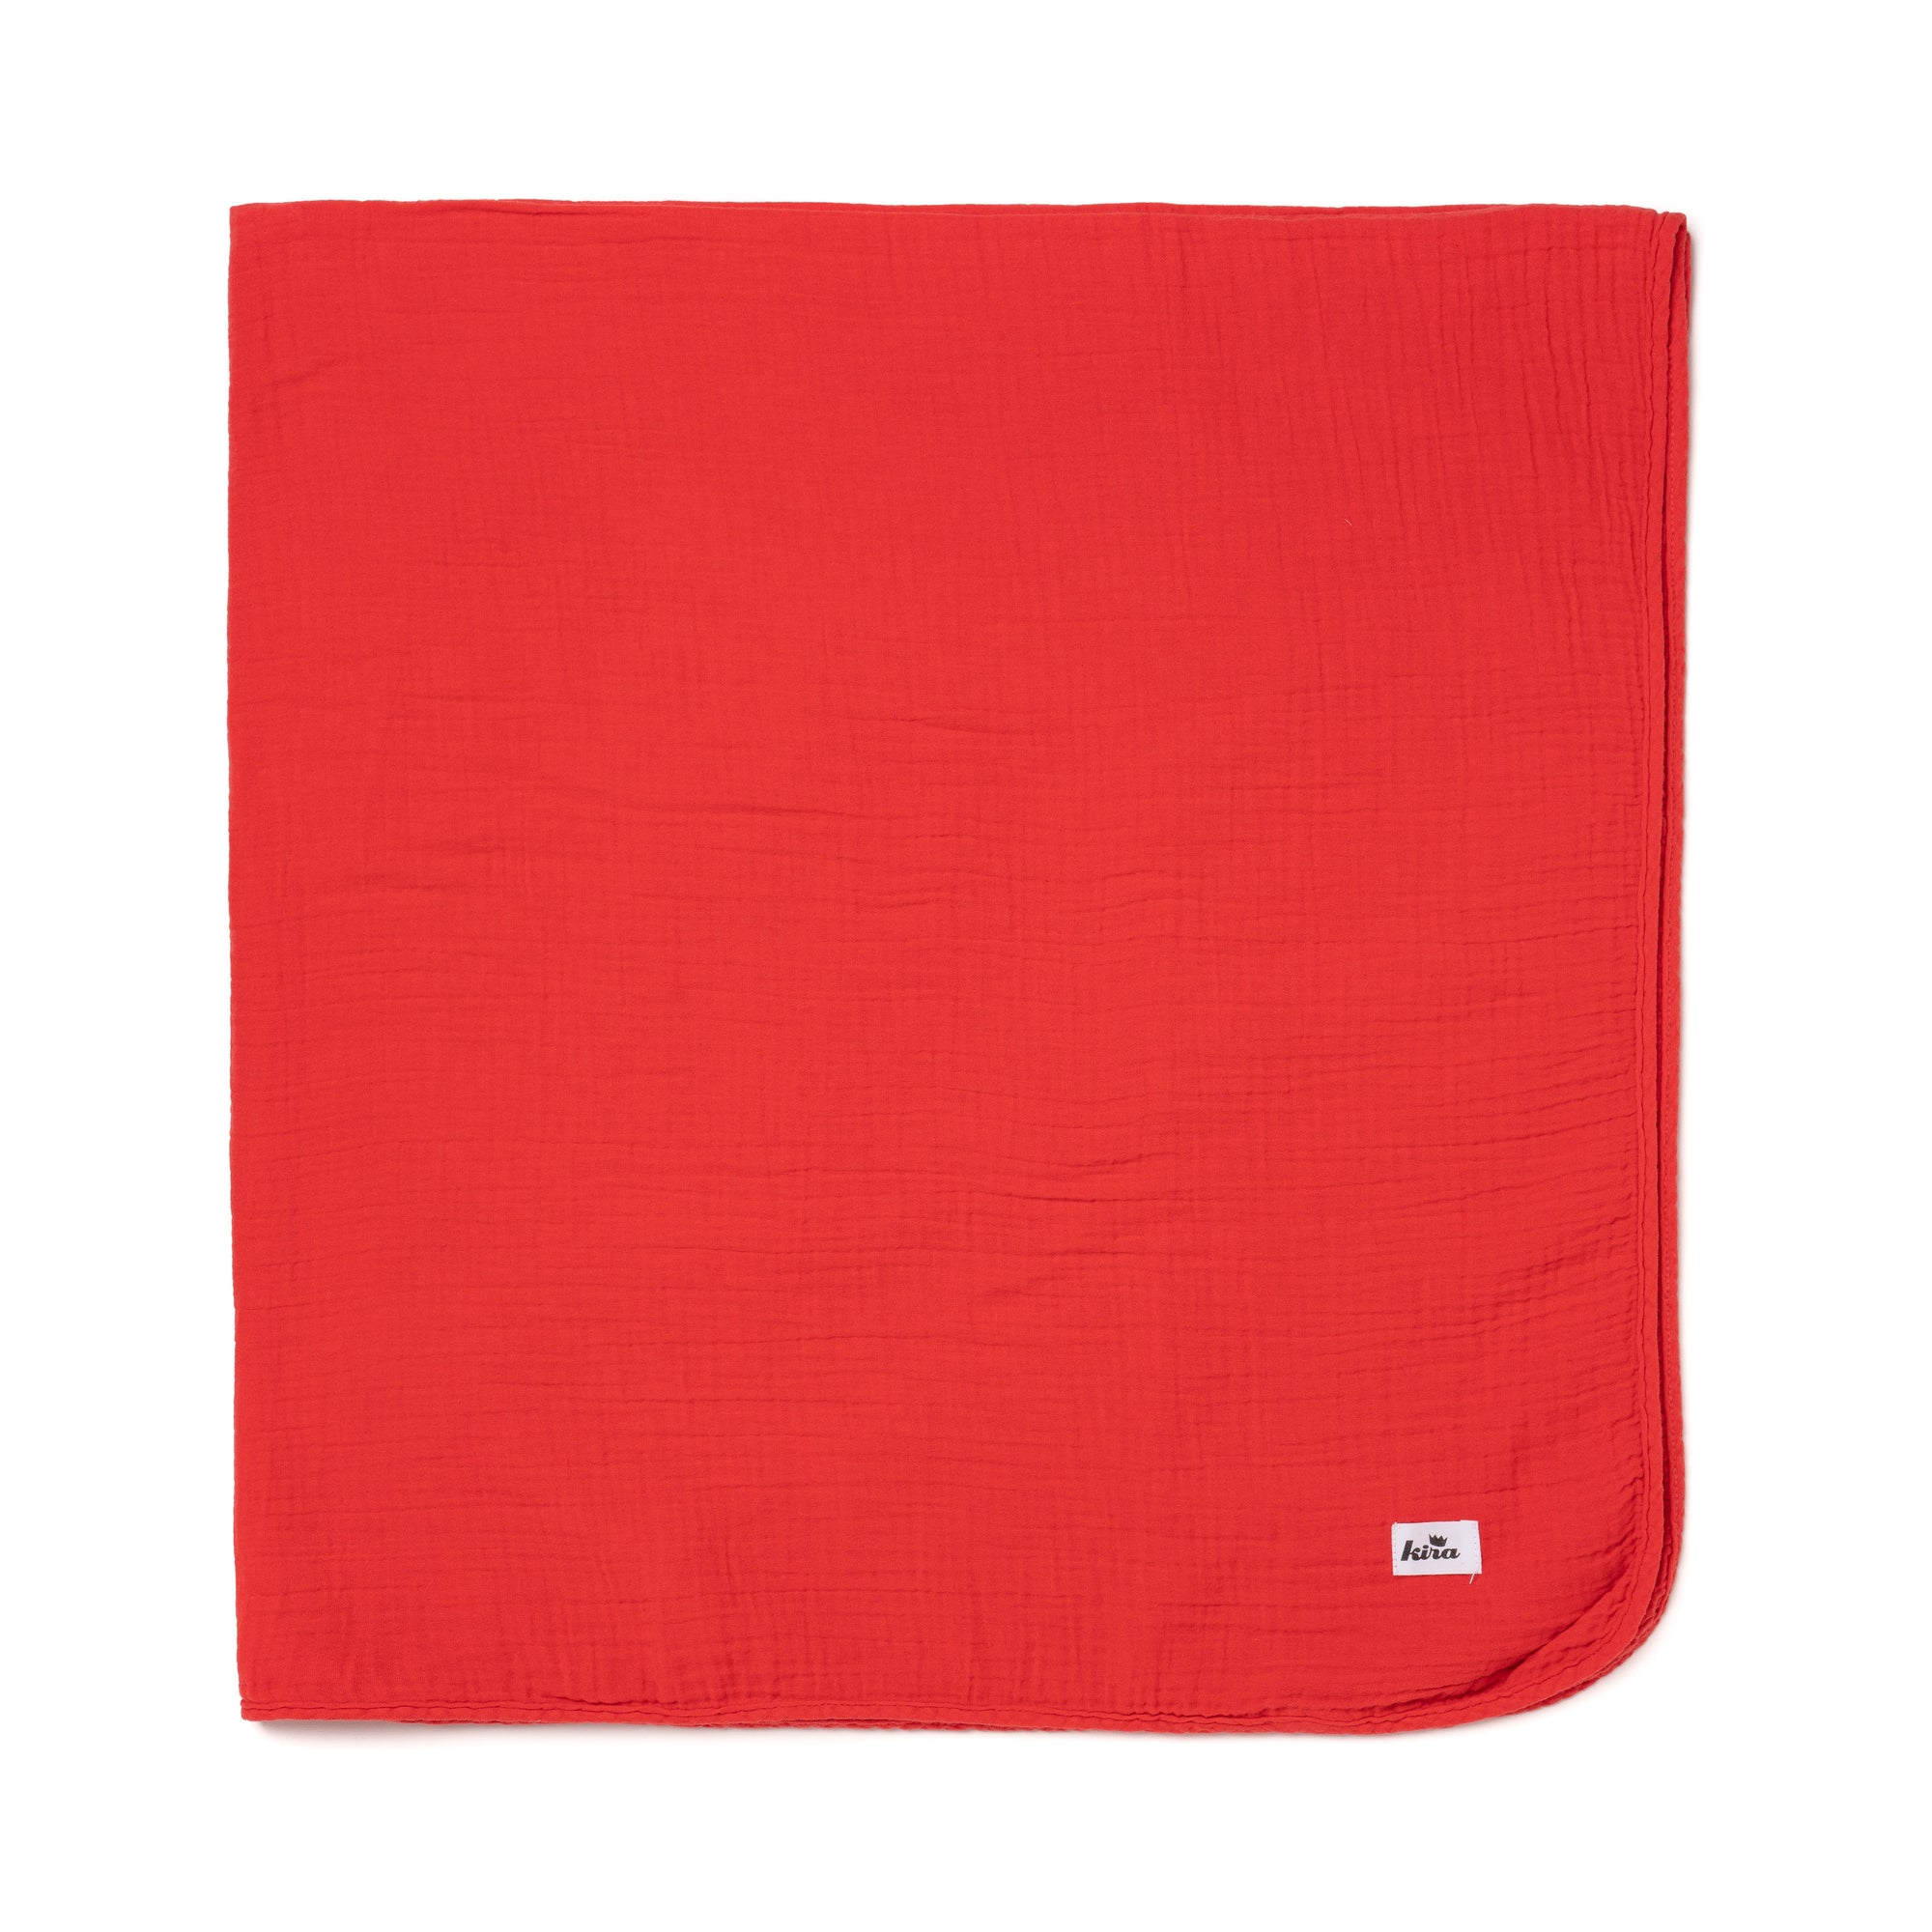 "Cotton Gauze Swaddle Blanket 47"" x 47"", Fluro Coral"